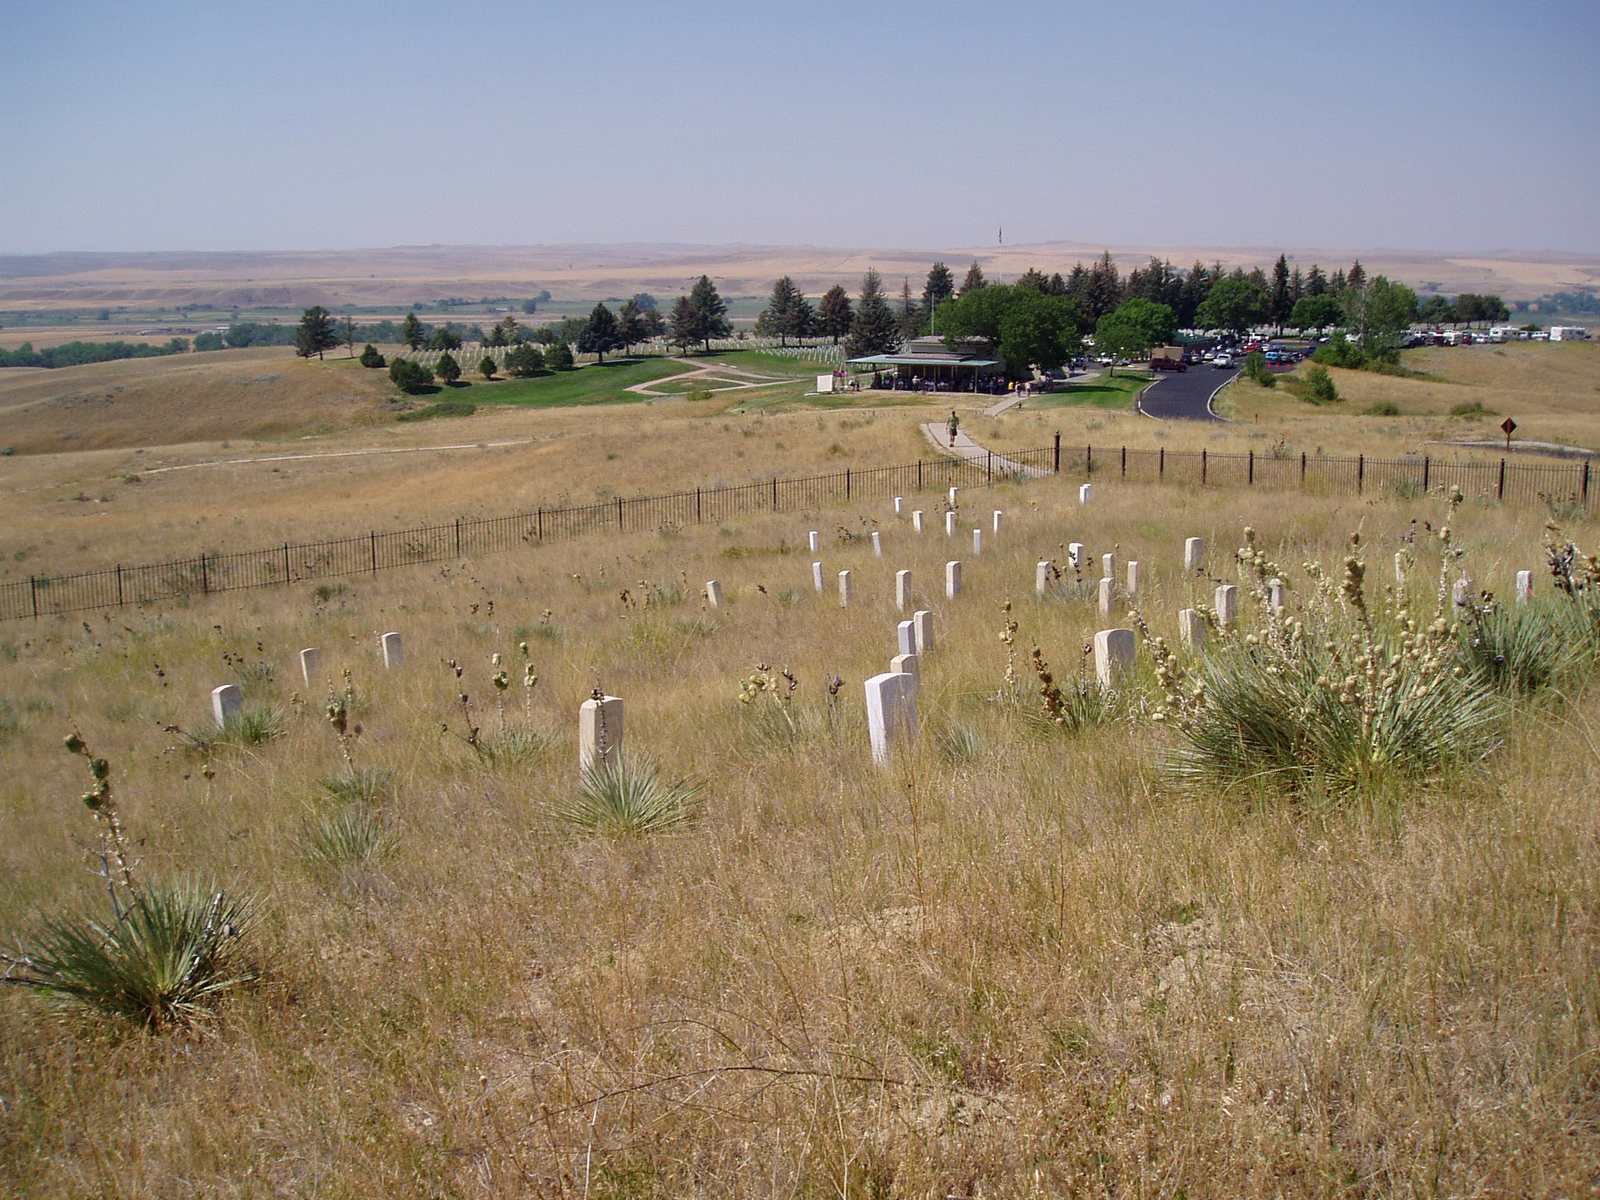 16. august 2003 - Udflugt til Little Bighorn Battelfield